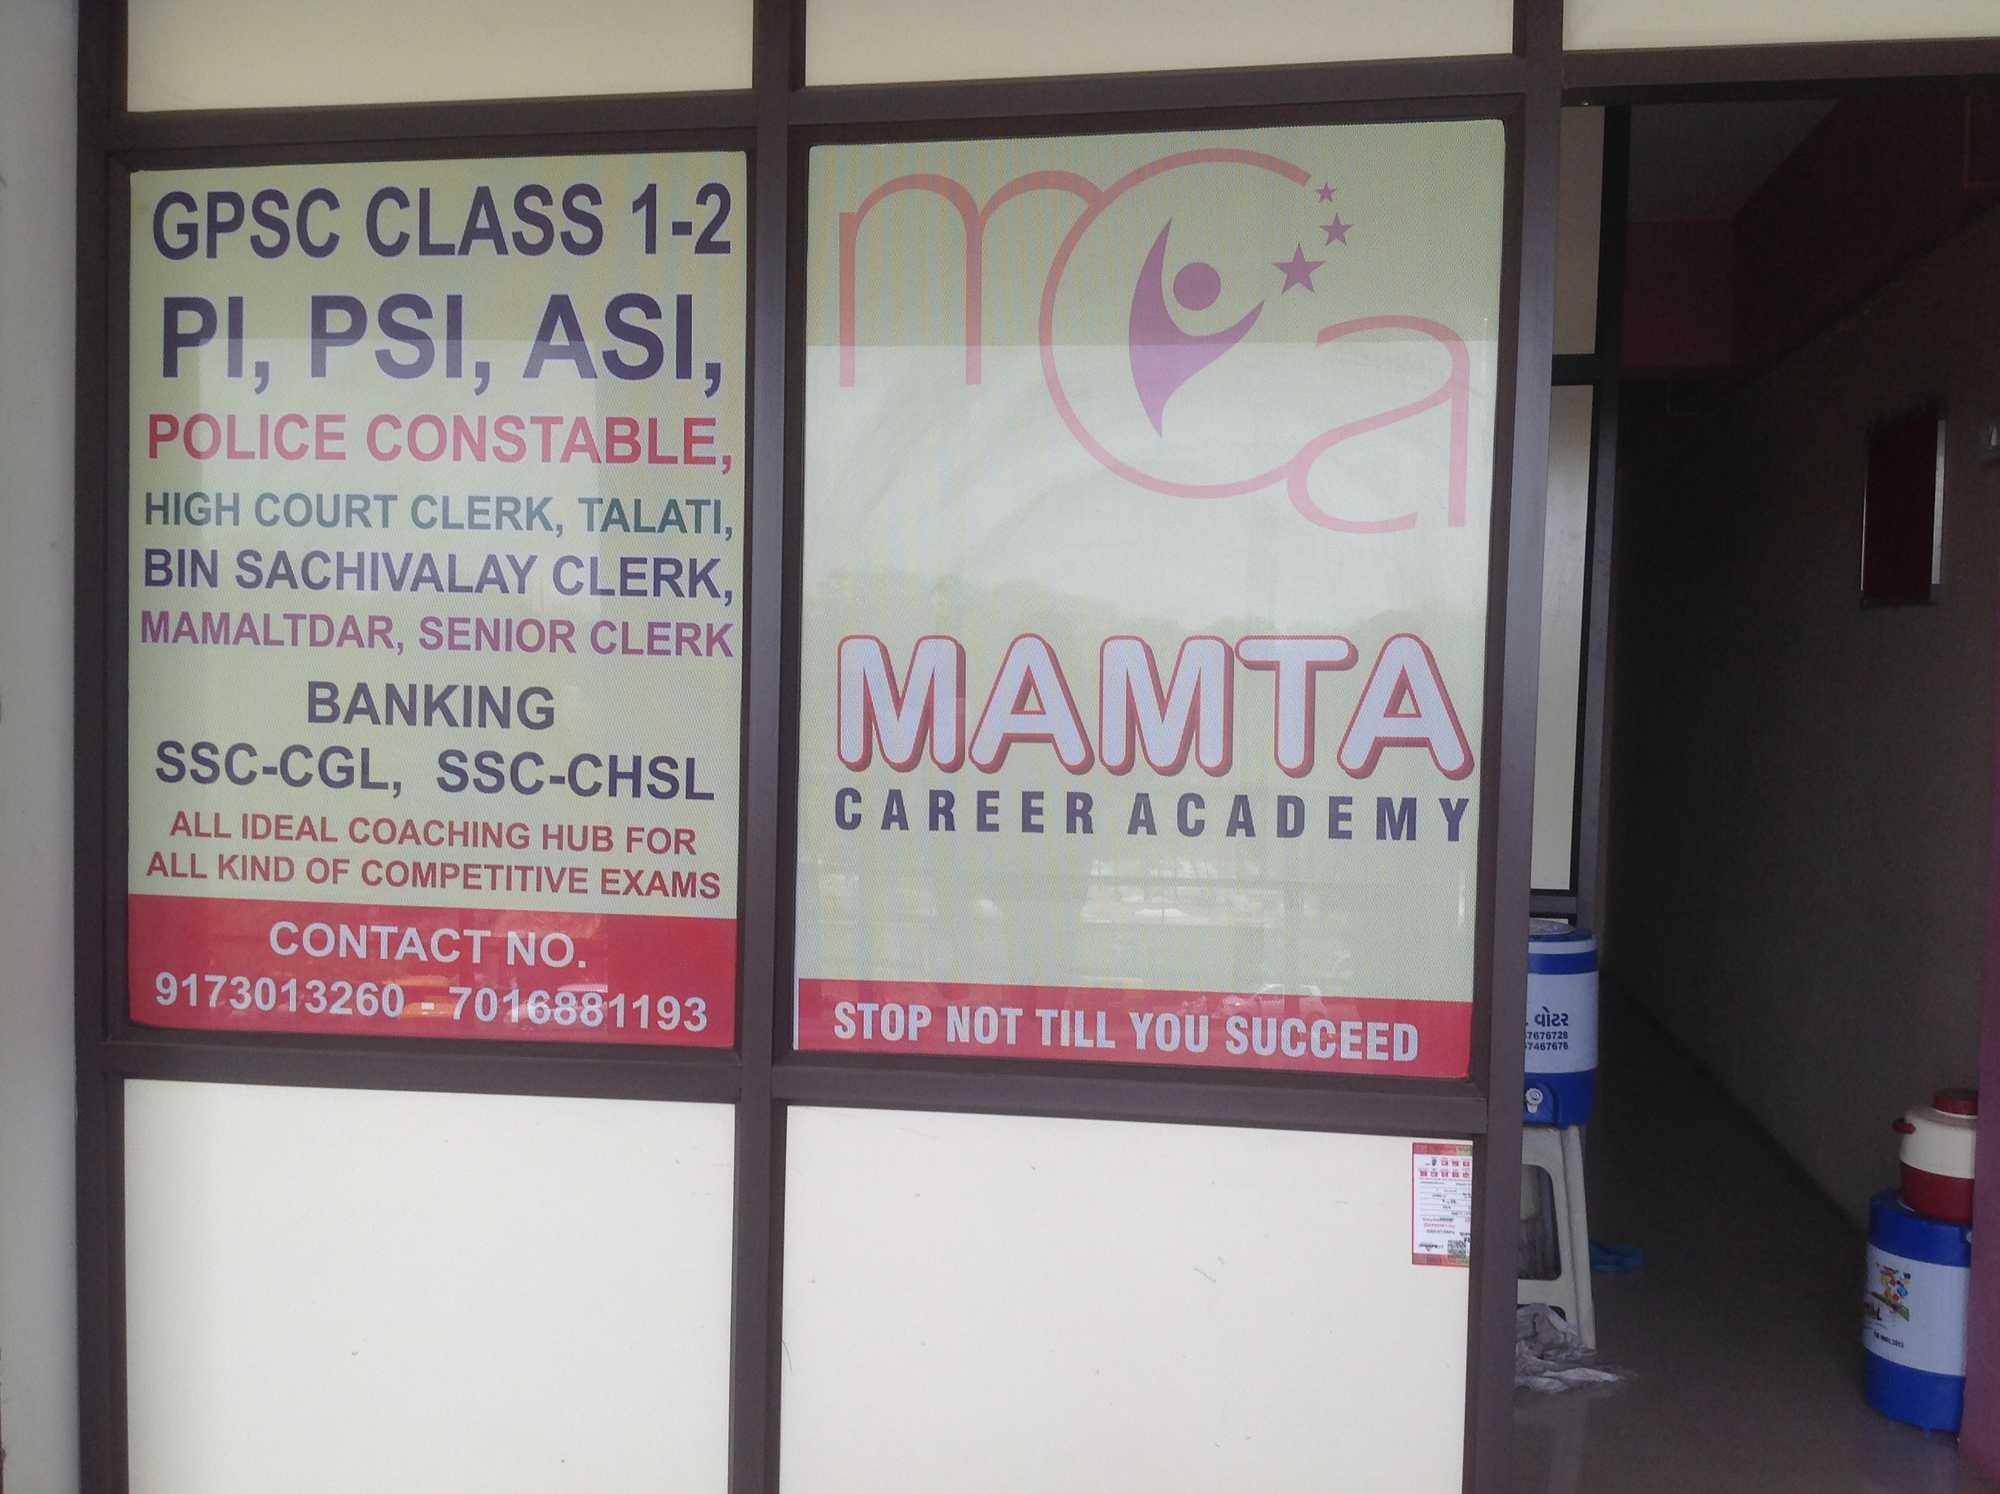 Mamta Career Academy